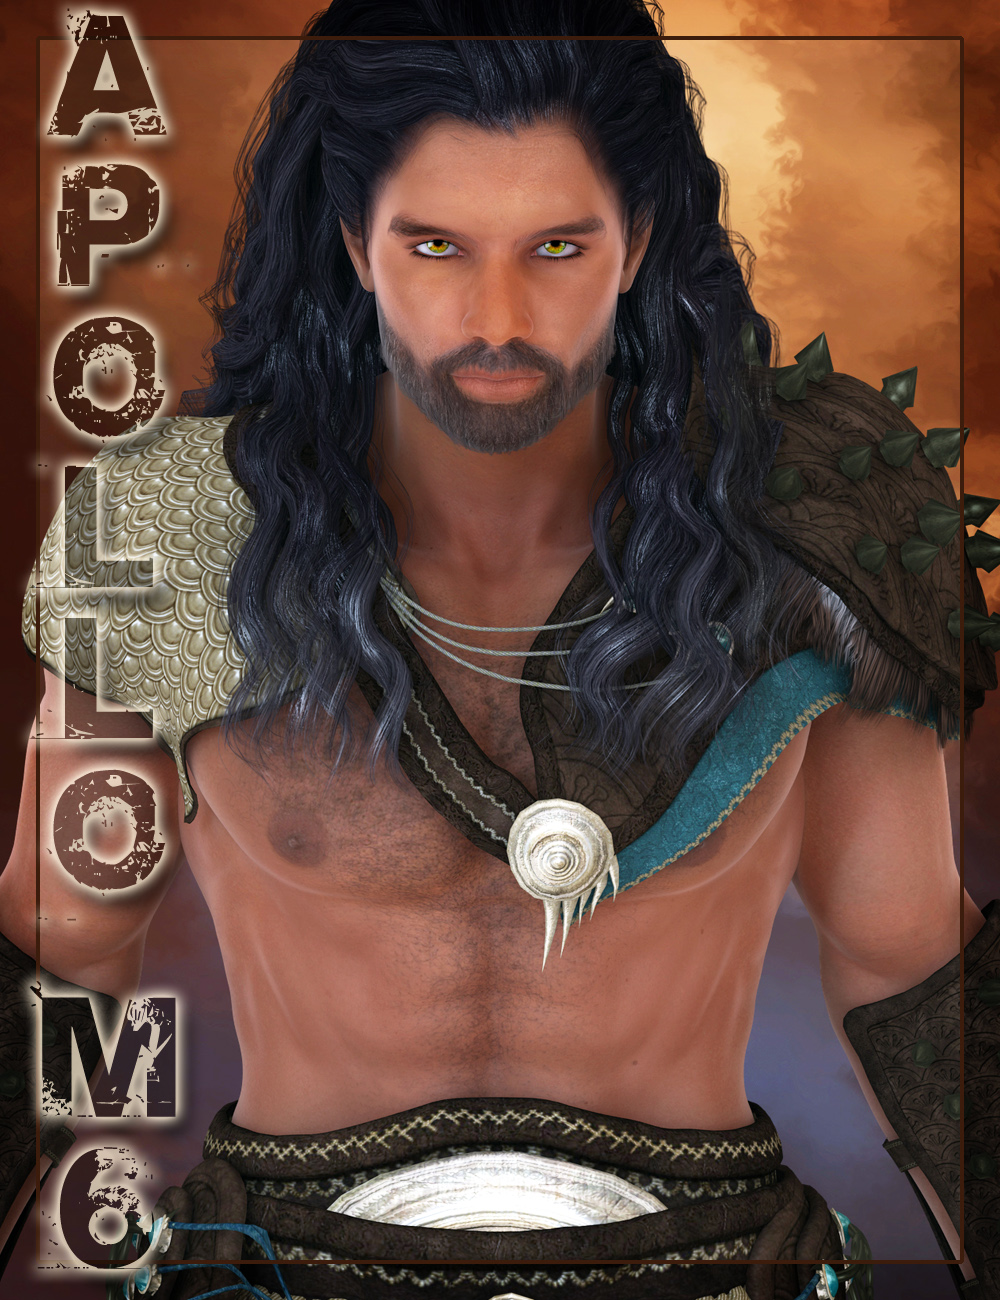 Apollo for Michael 6 by: gypsyangel, 3D Models by Daz 3D